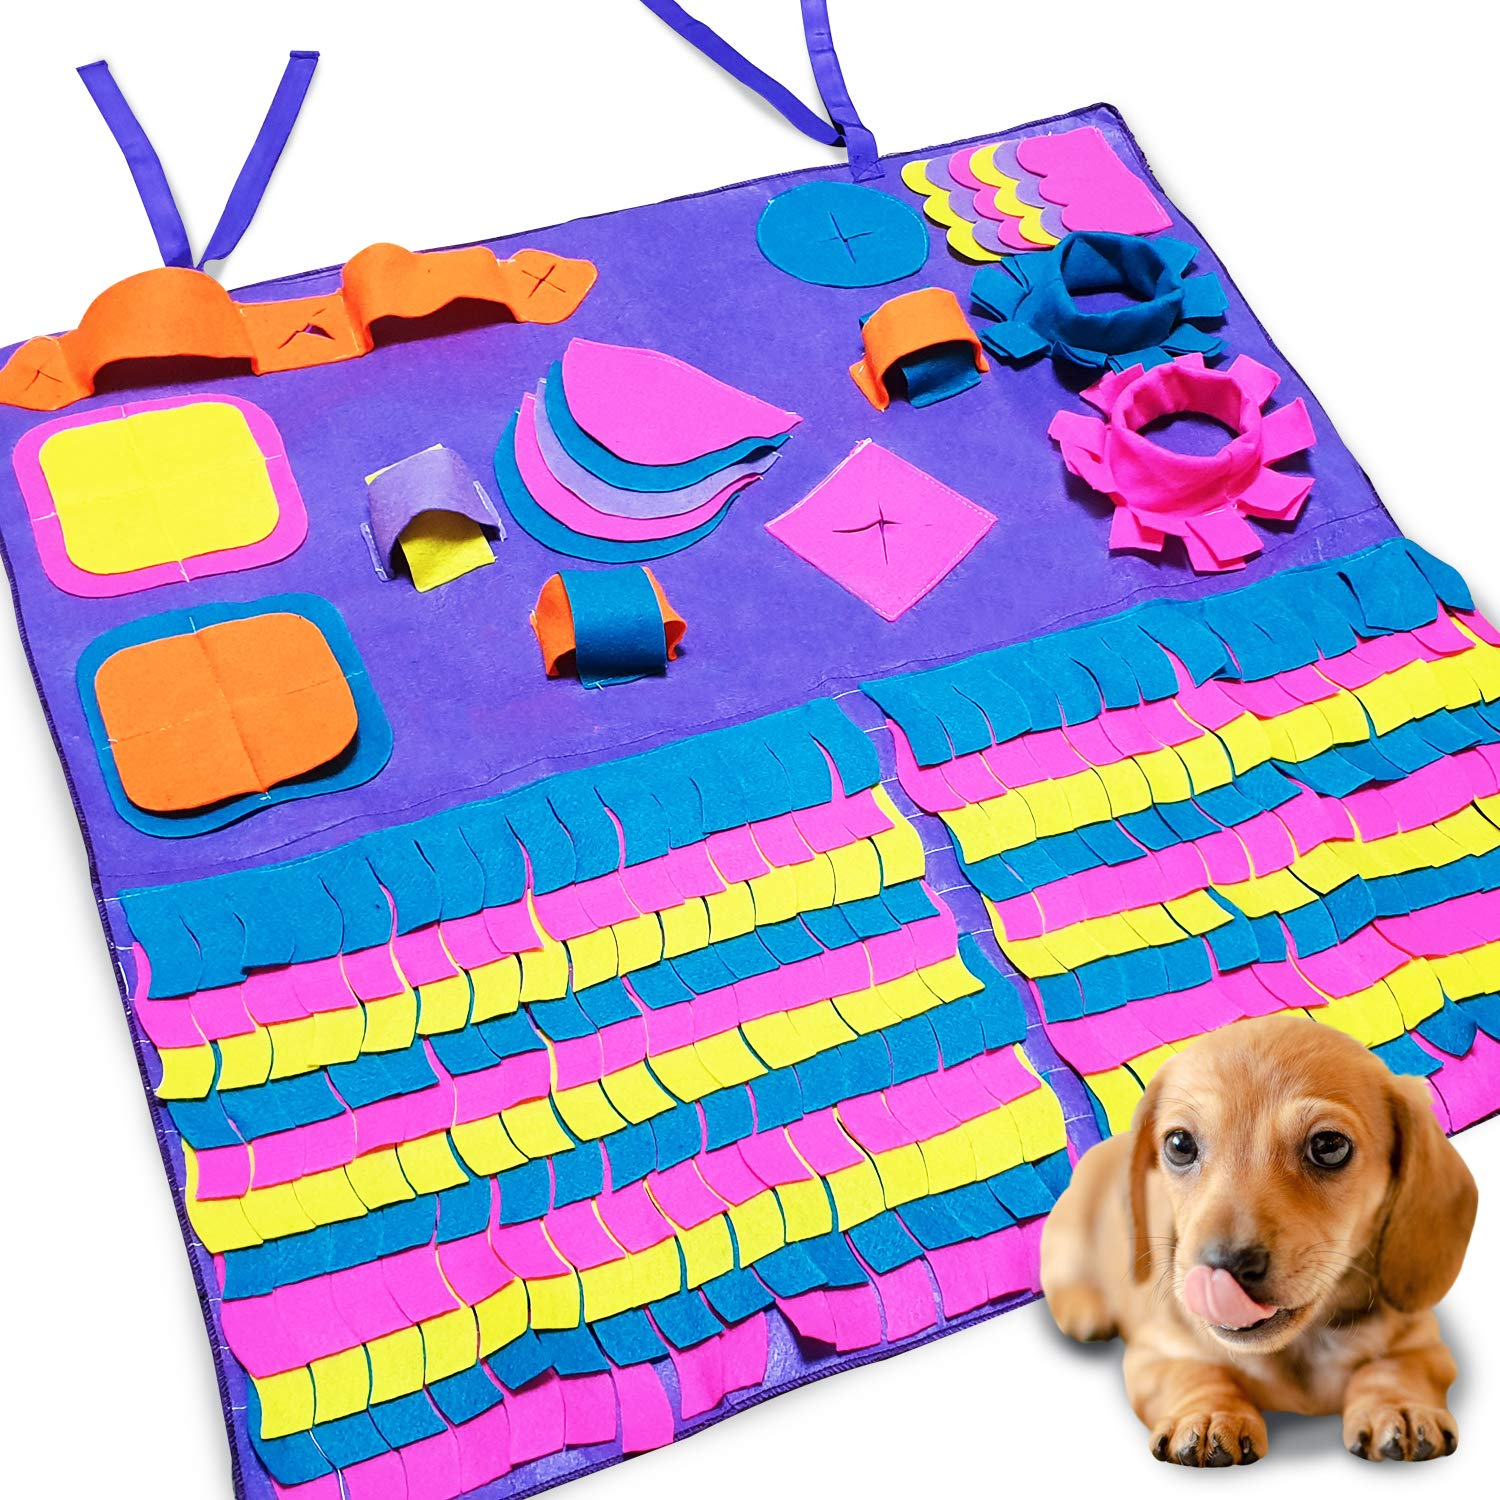 Dog Food Mat by Seonova Snuffle Mat - Interactive Puzzle Toys Feeder for Dogs - Slow Feeding Mat - Stimulates Brain & Engages Smell - Machine Washable - All Breeds & Sizes - Nosework & Rooting Mat